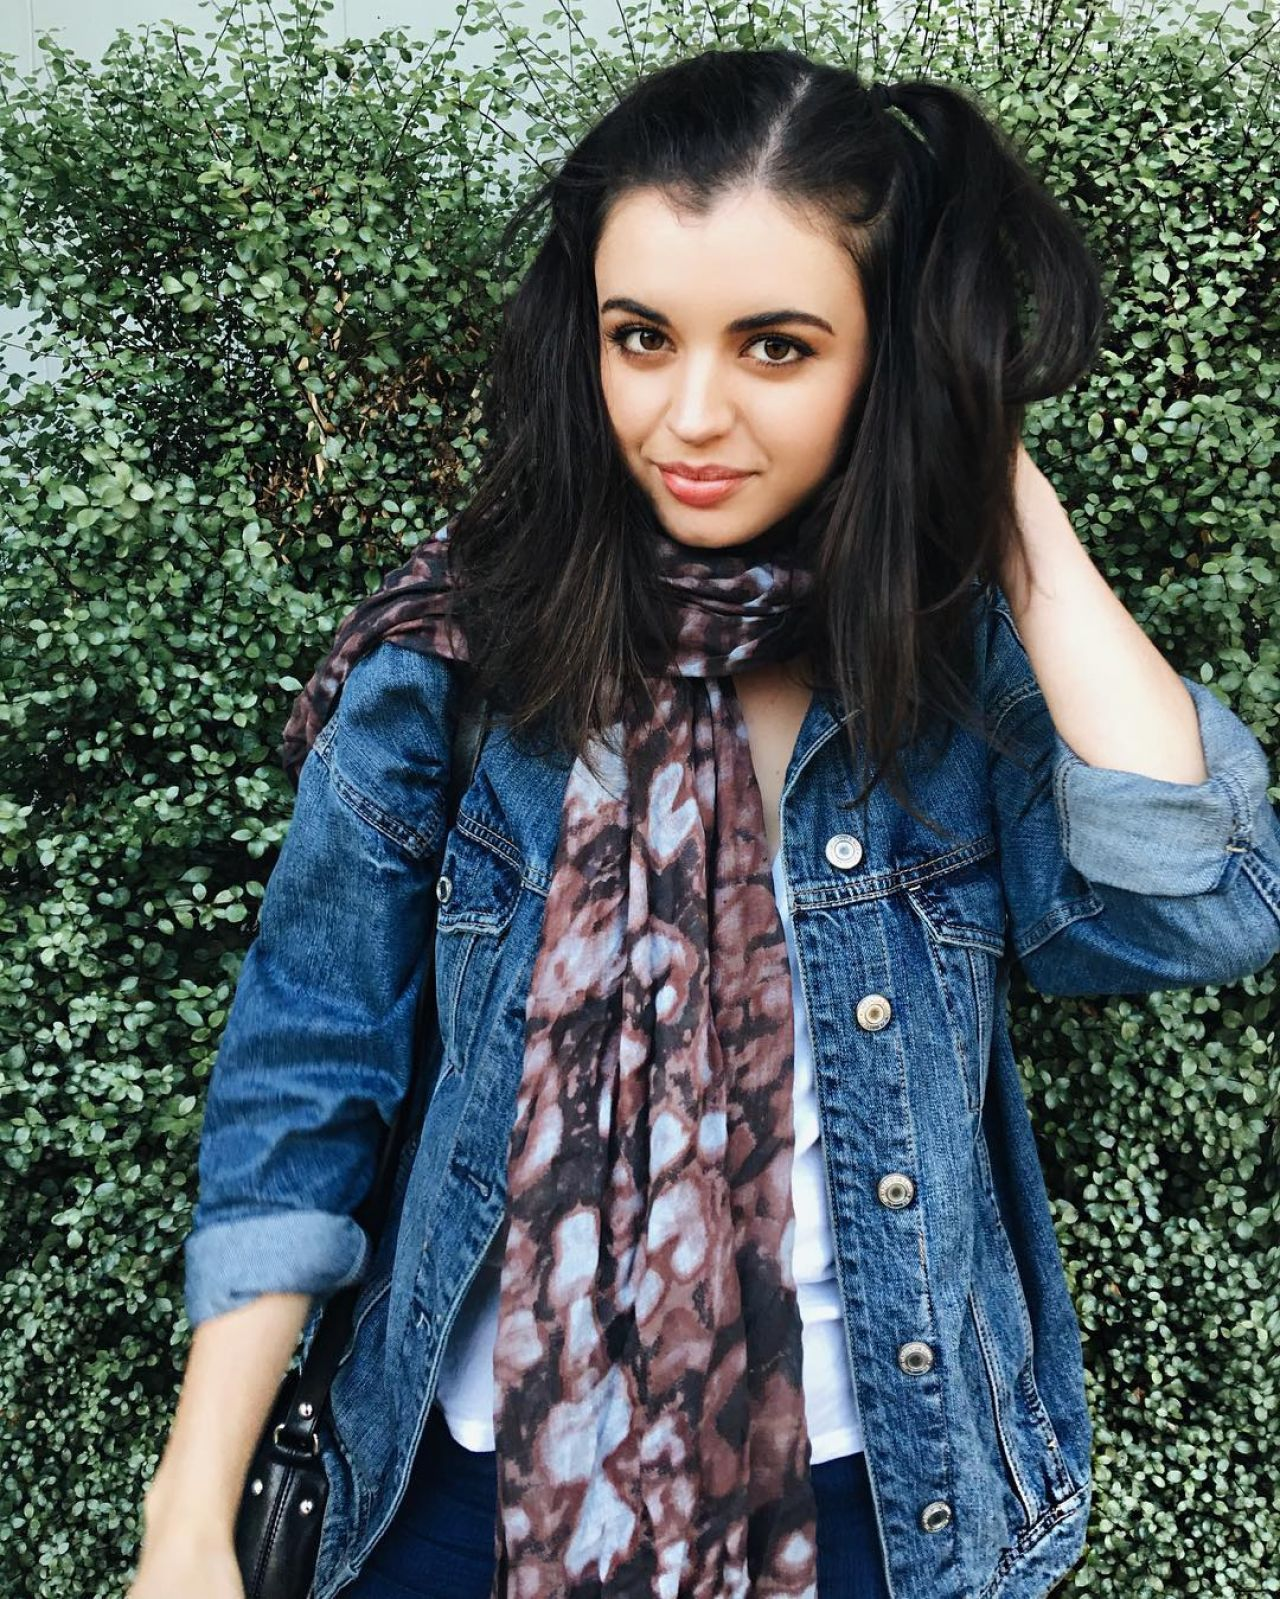 Rebecca Black Photos Social Media February 2017